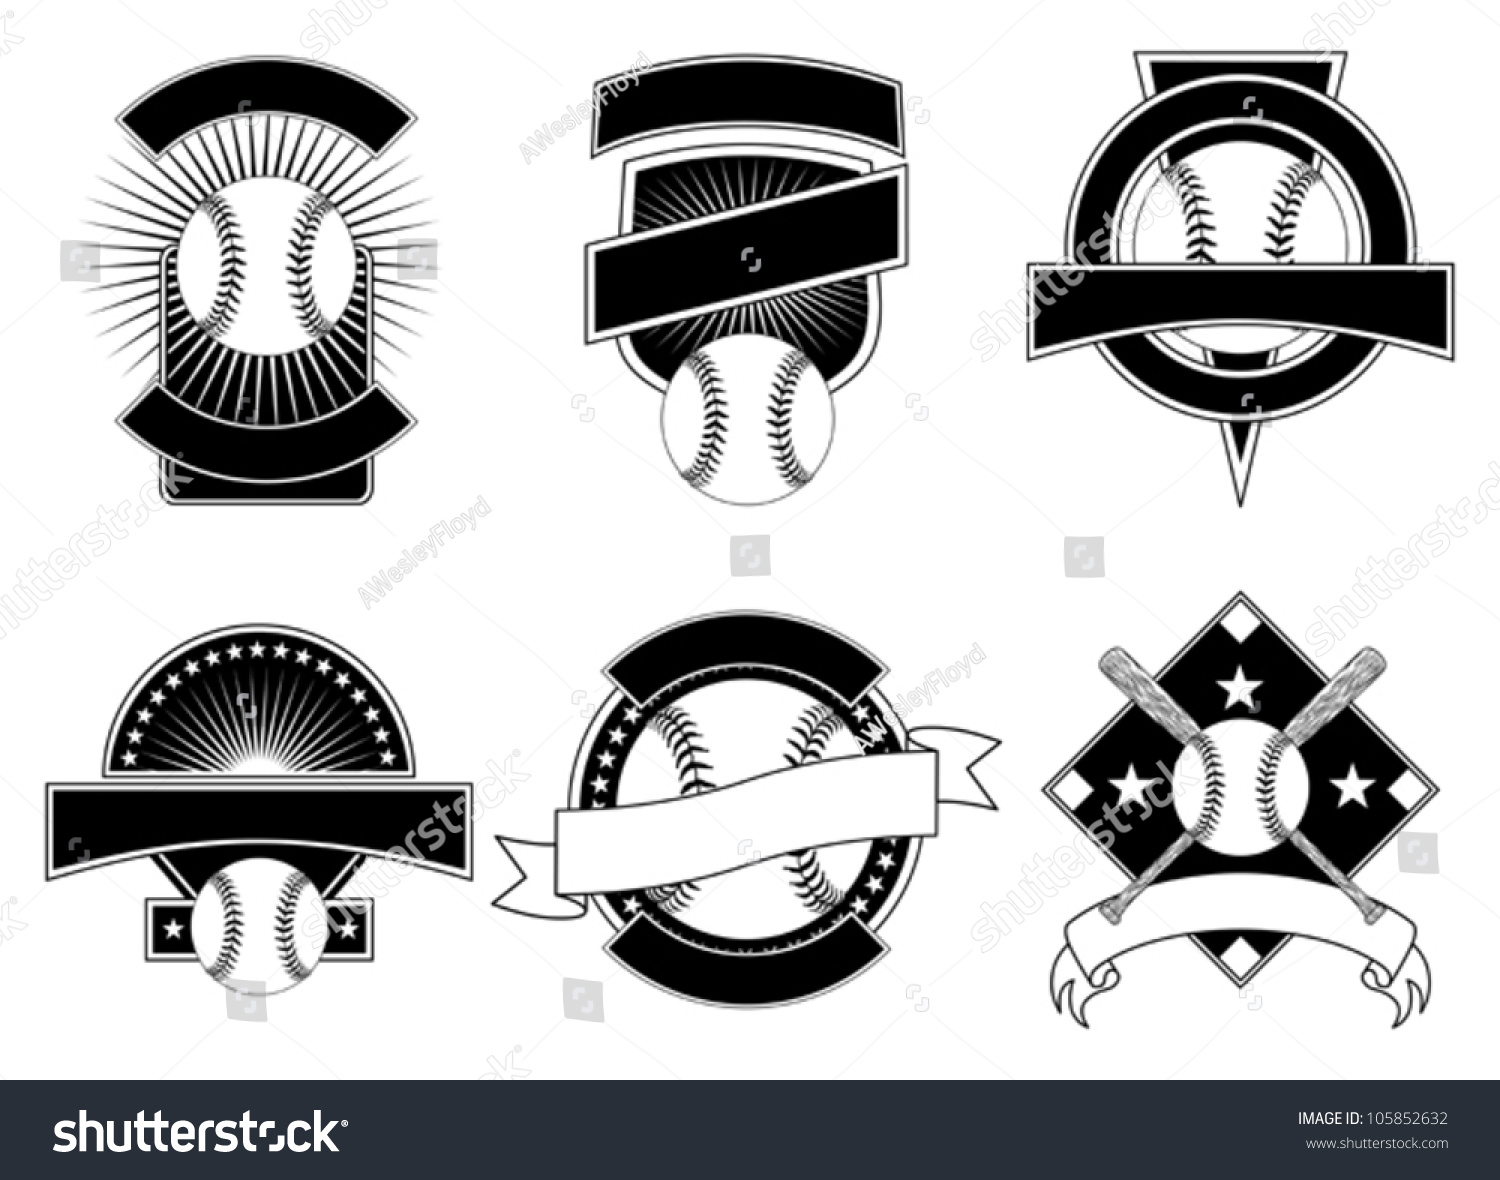 Baseball Design Templates Illustration Six Baseball Stock Vector